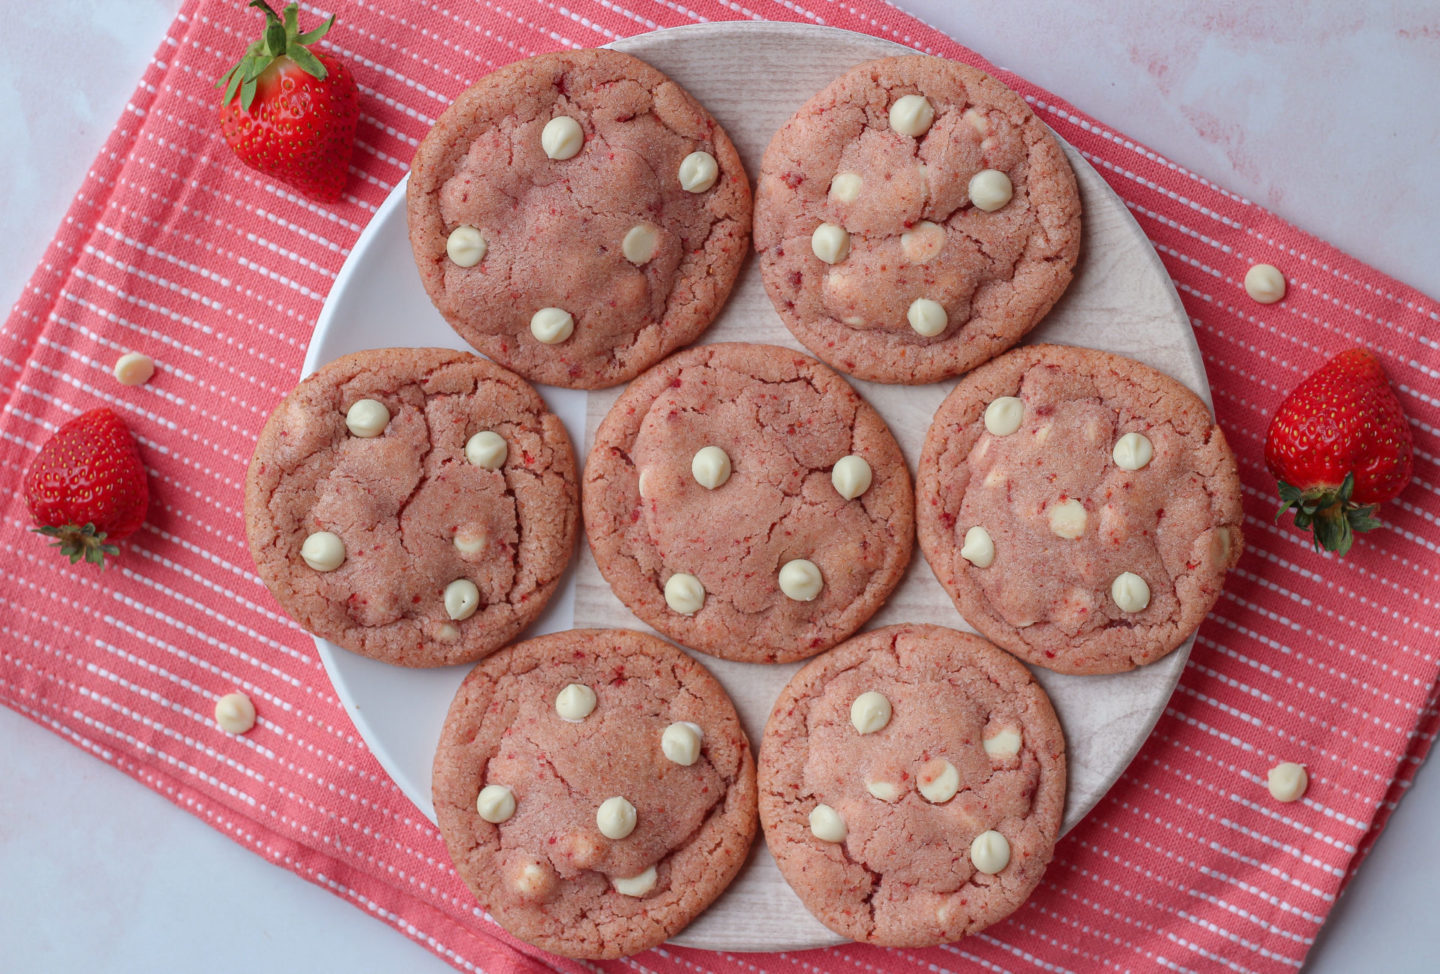 Small plate full of strawberry white chocolate cookies